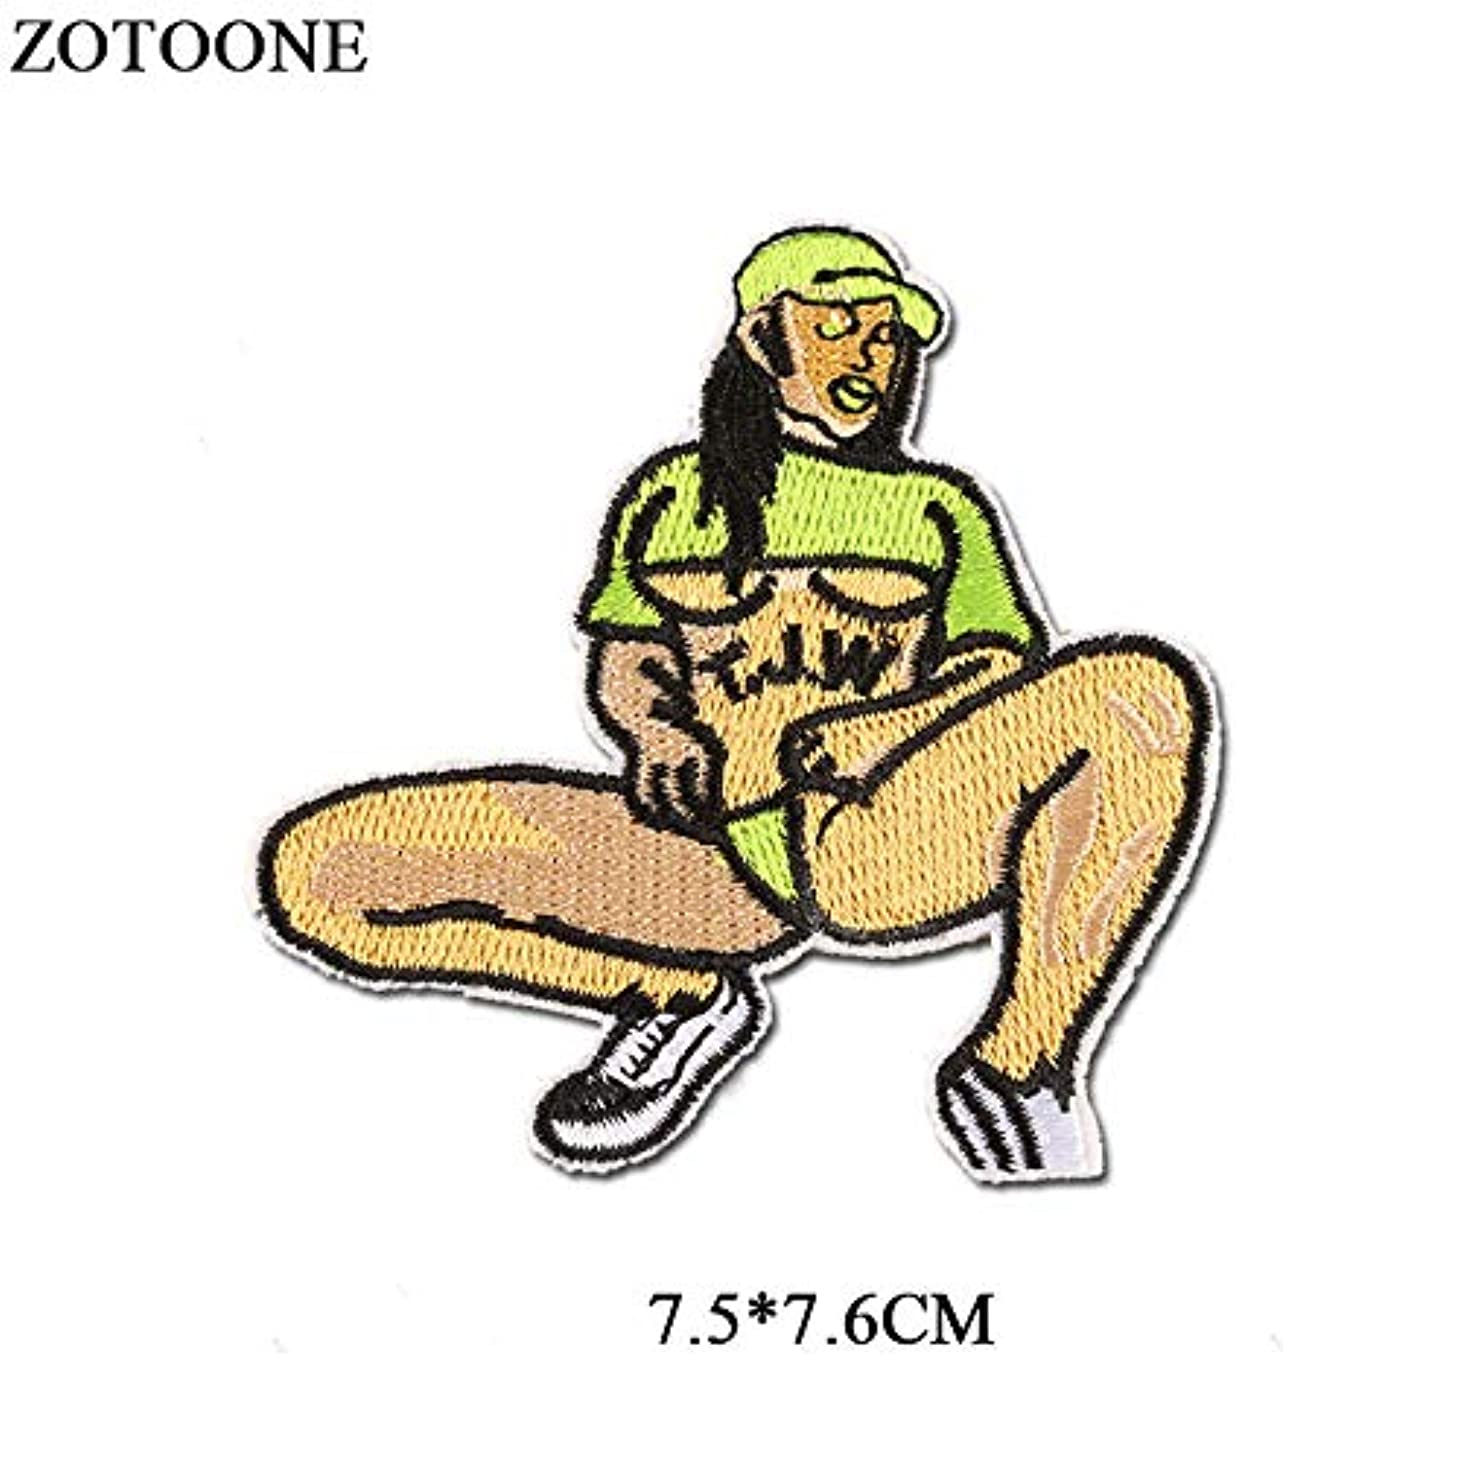 ZOTOONE Sexy Girl Iron On Patches for Clothes Backpack DIY Embroidered Motorcycle PVC Patch Sew On Badge Applique 1808